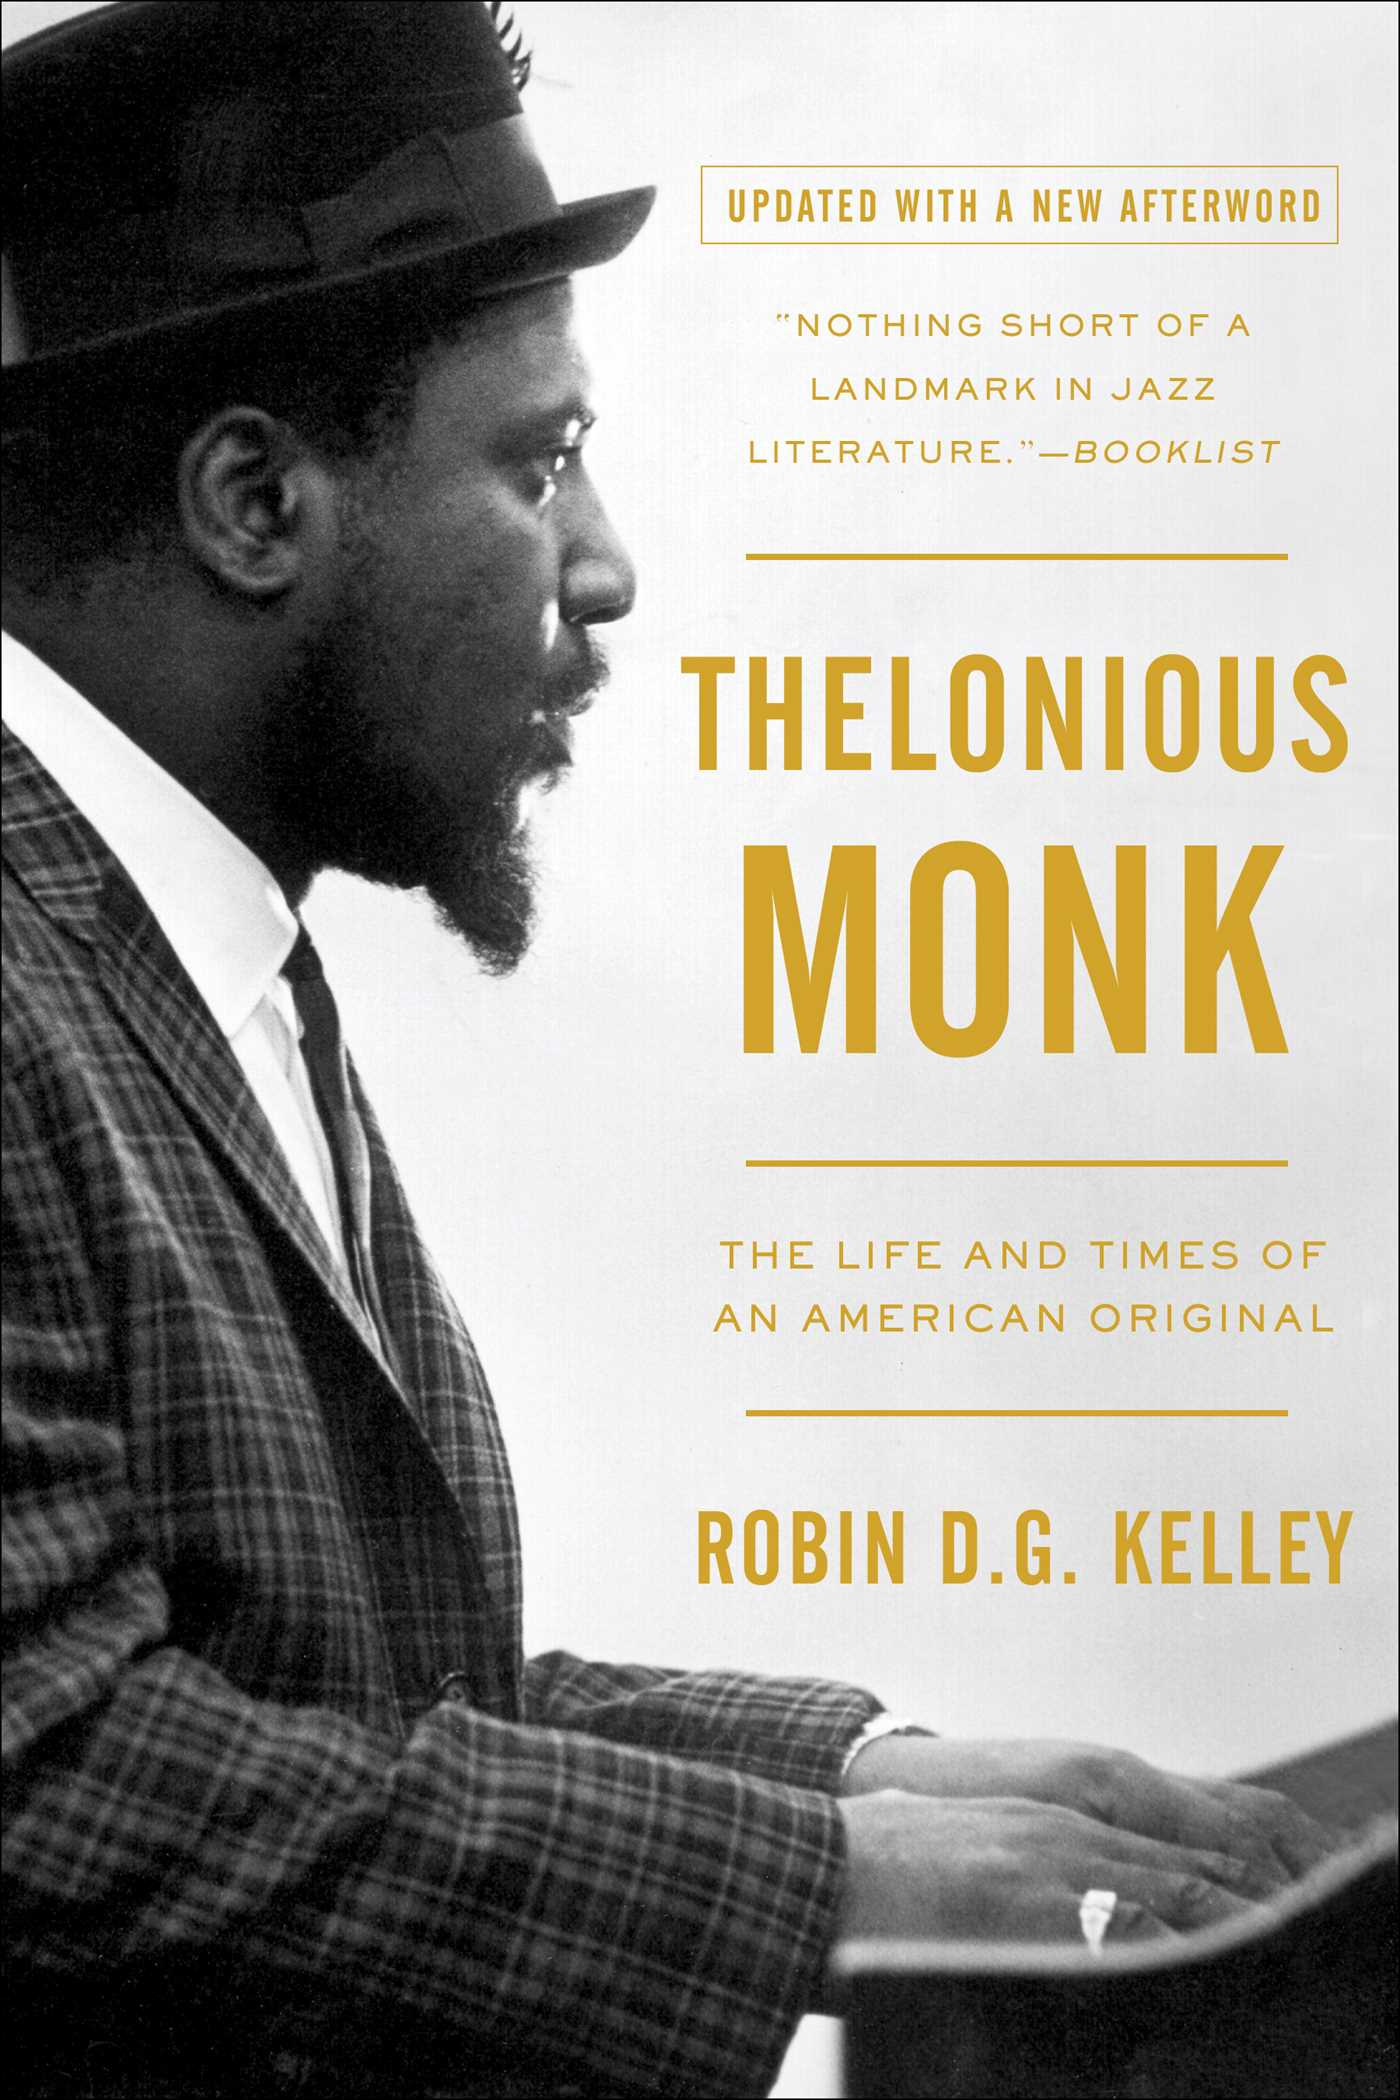 Thelonious-monk-9781439190494_hr